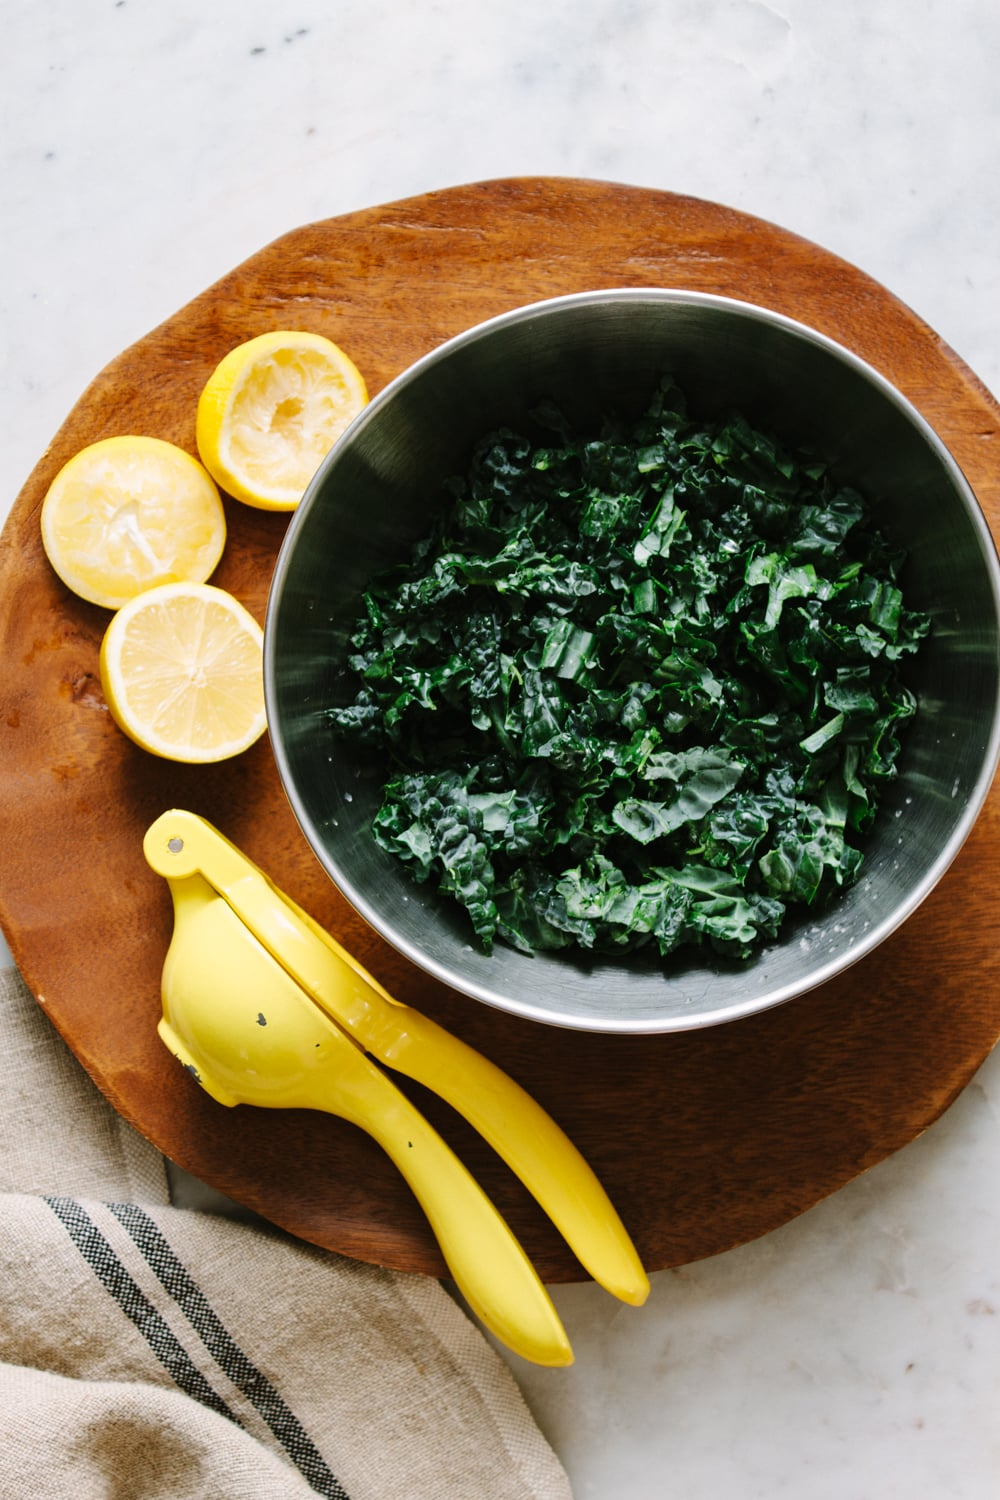 top down view of kale marinating with lemon in a stainless steel bowl.